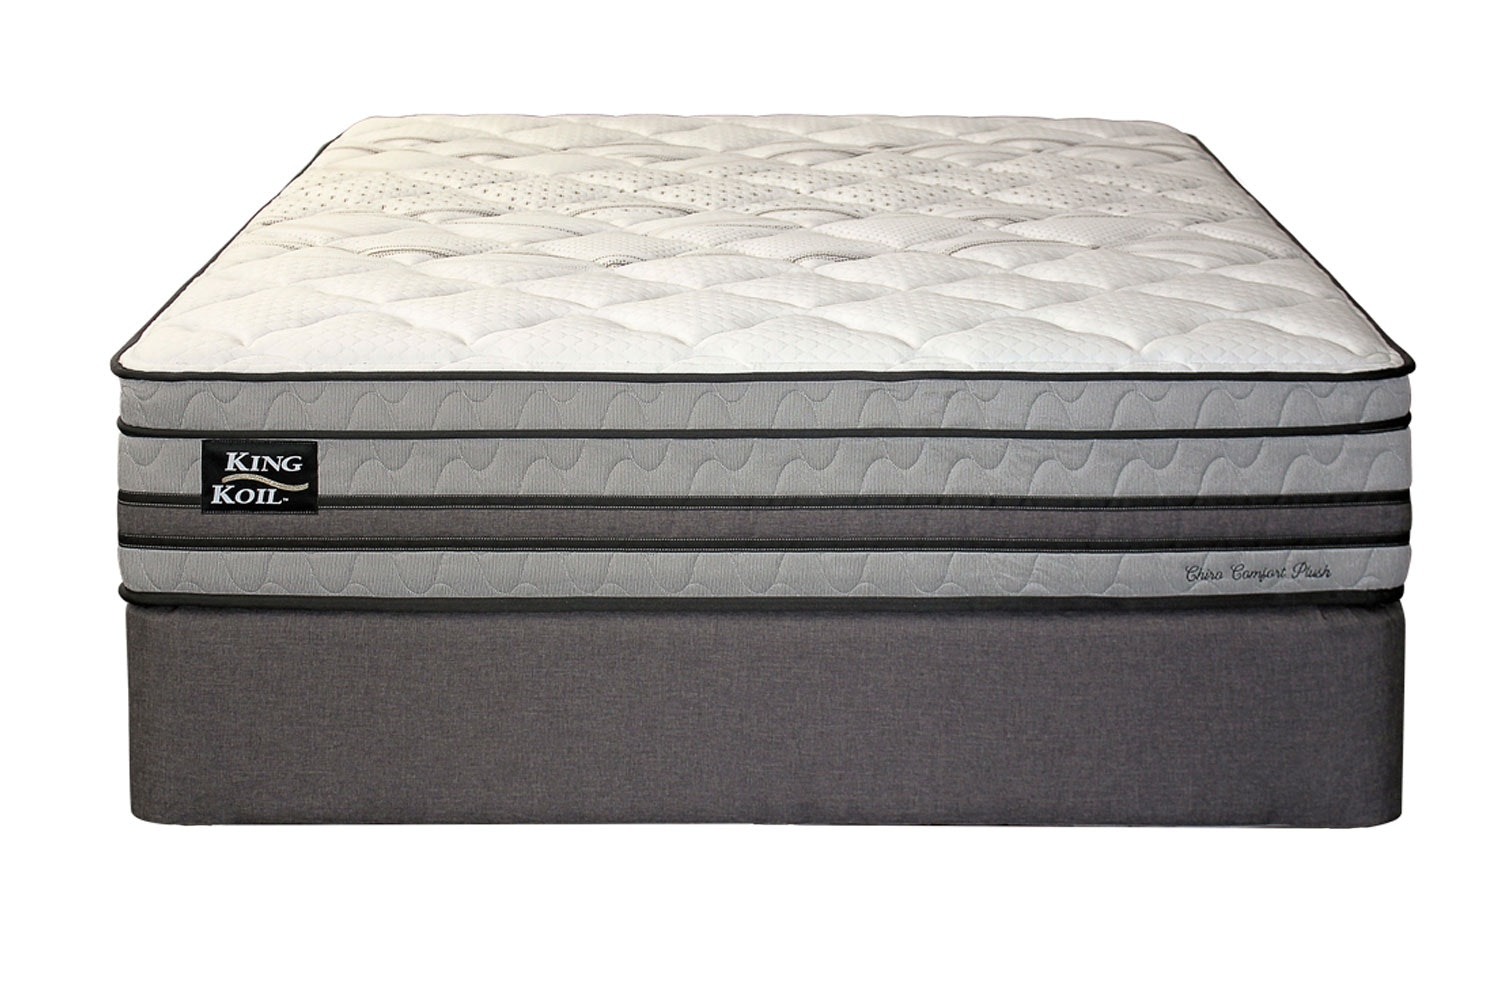 Chiro Comfort Plush Queen Bed by King Koil